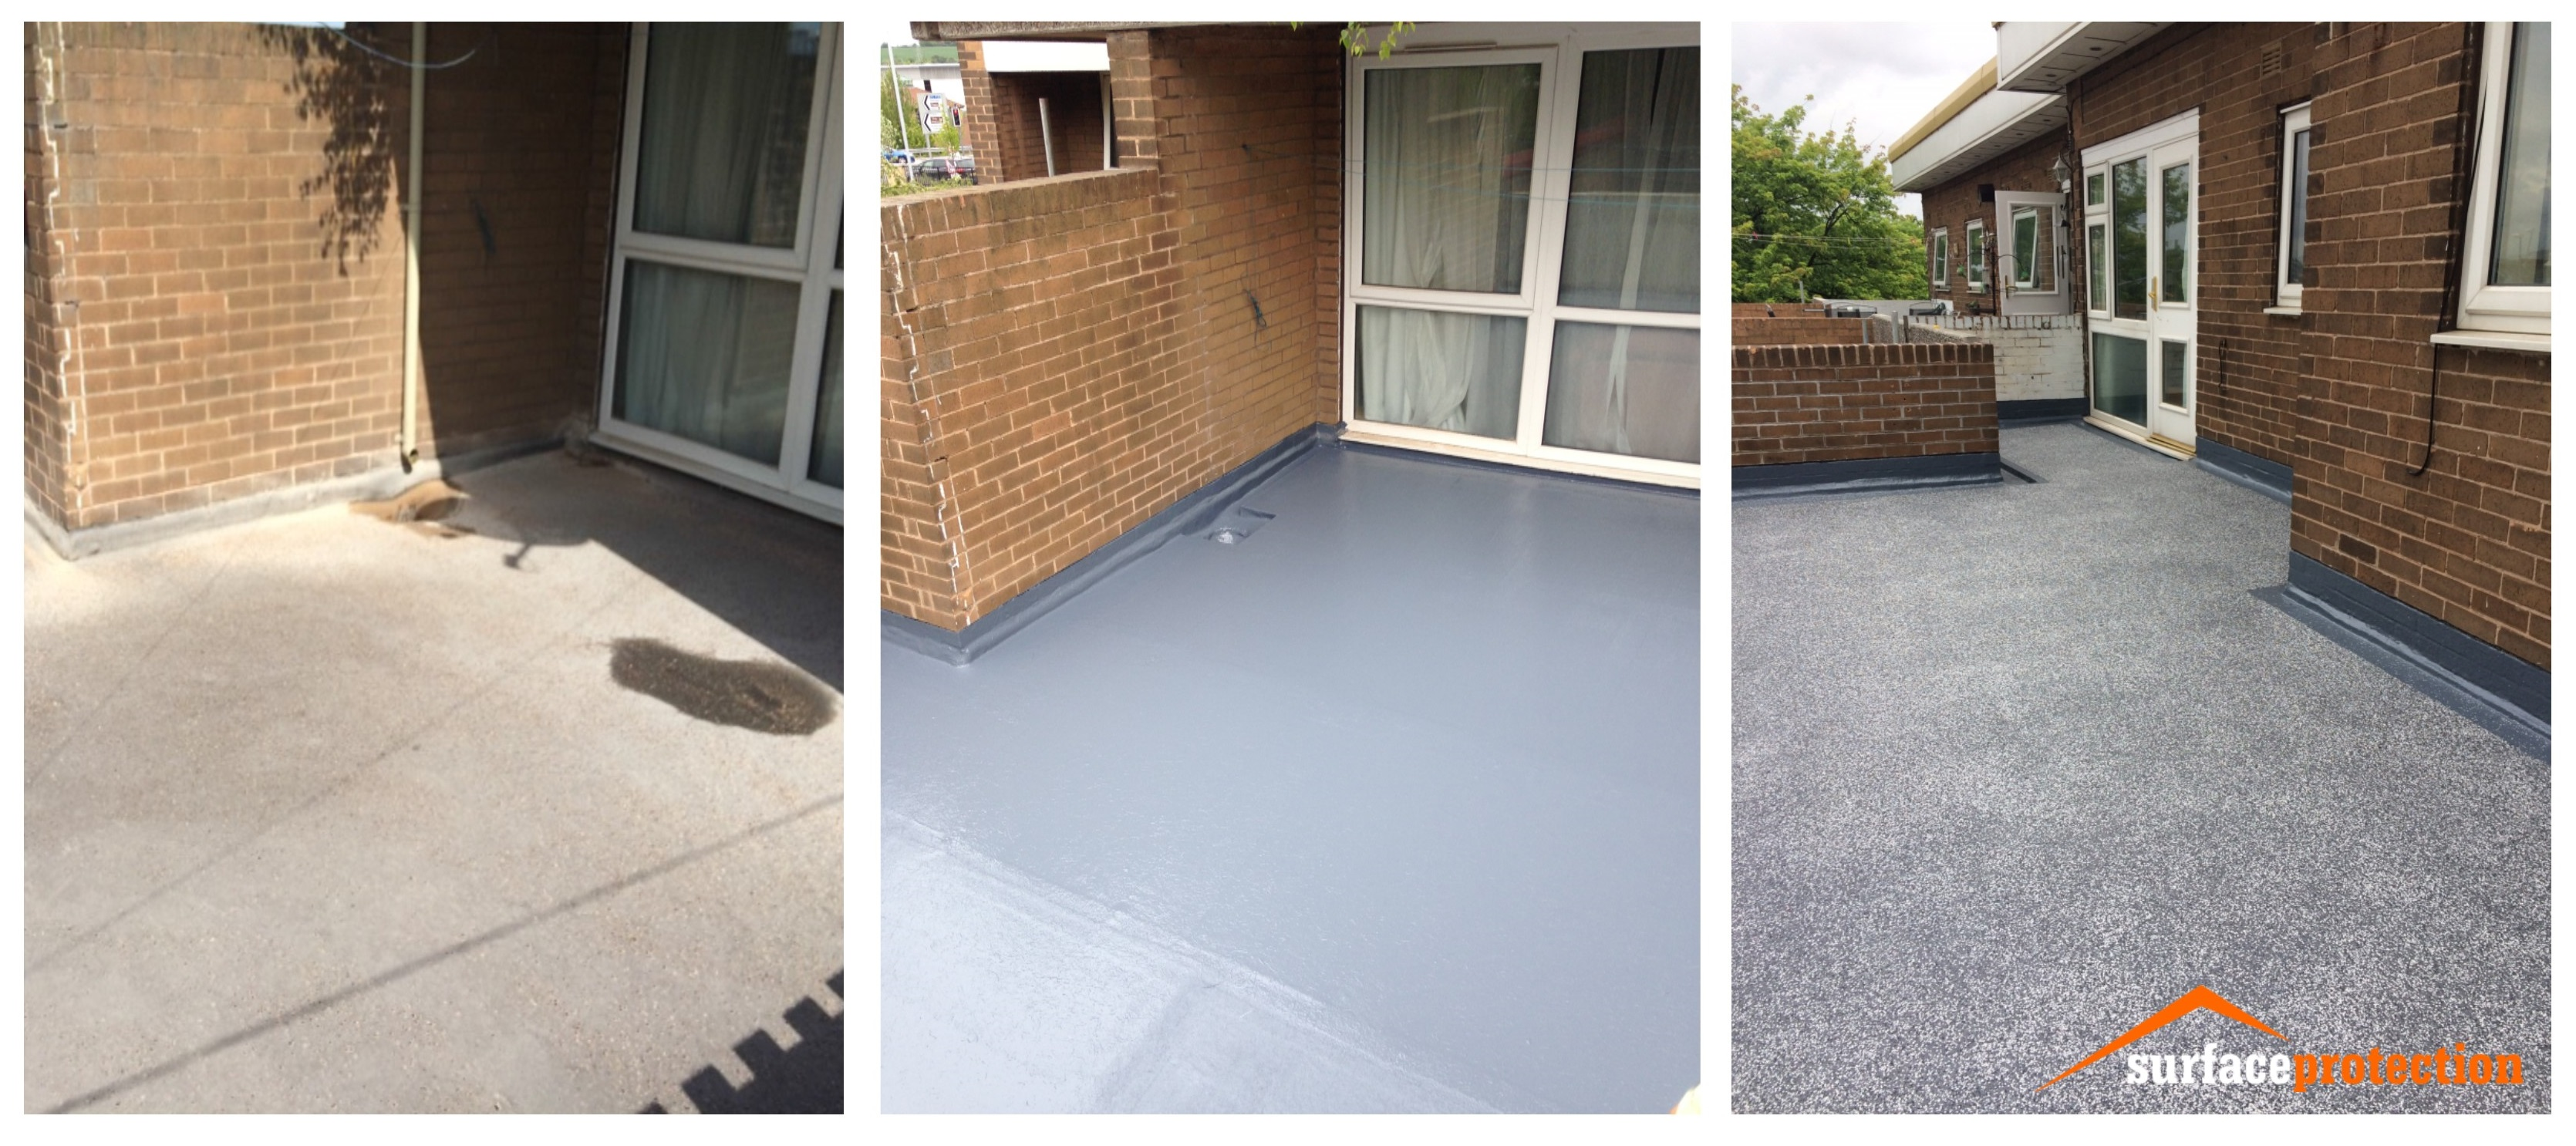 Waterproofing Of Asphalt Balconies In Rotherham Surface